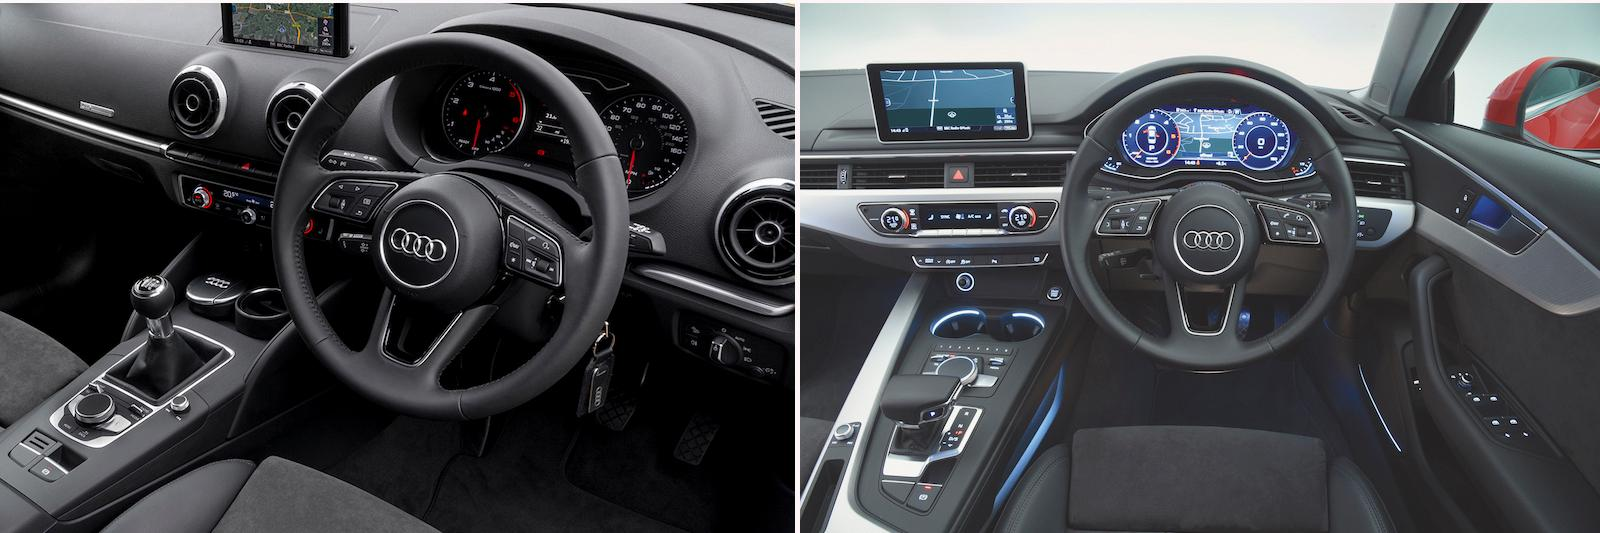 New Audi A3 vs used Audi A4: which is best?